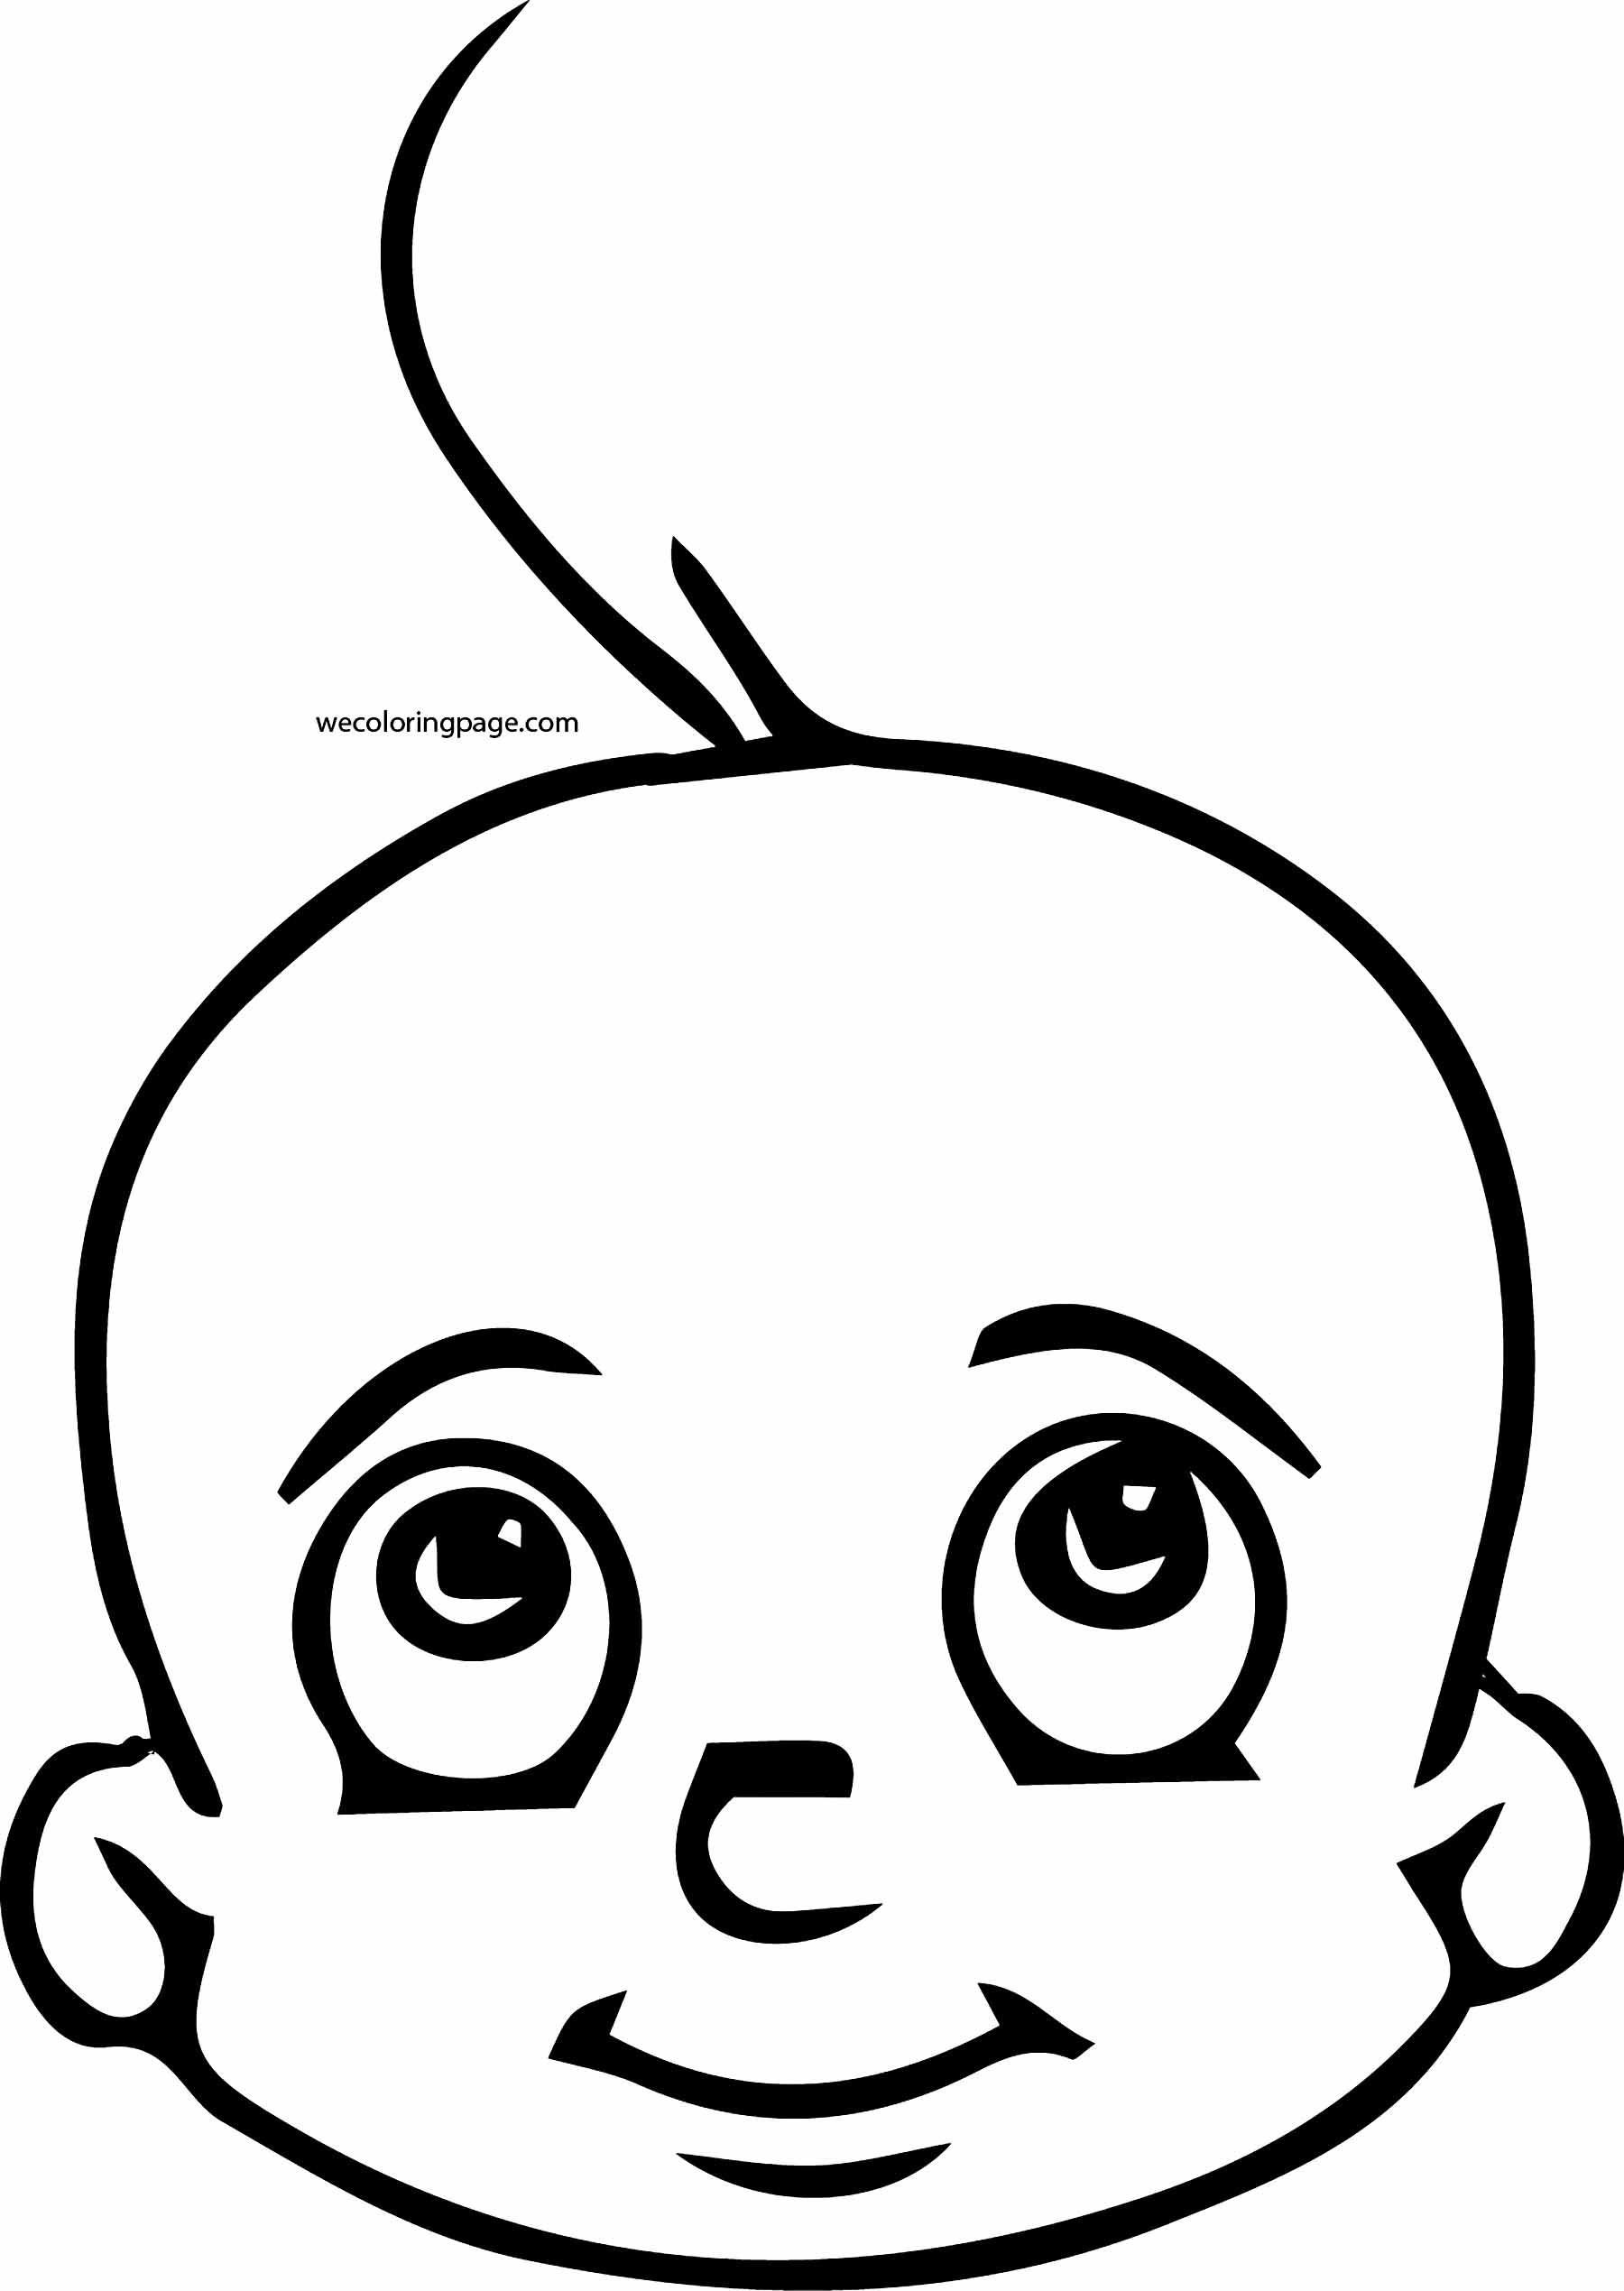 Chhota bheem baby face coloring page for Baby face coloring page